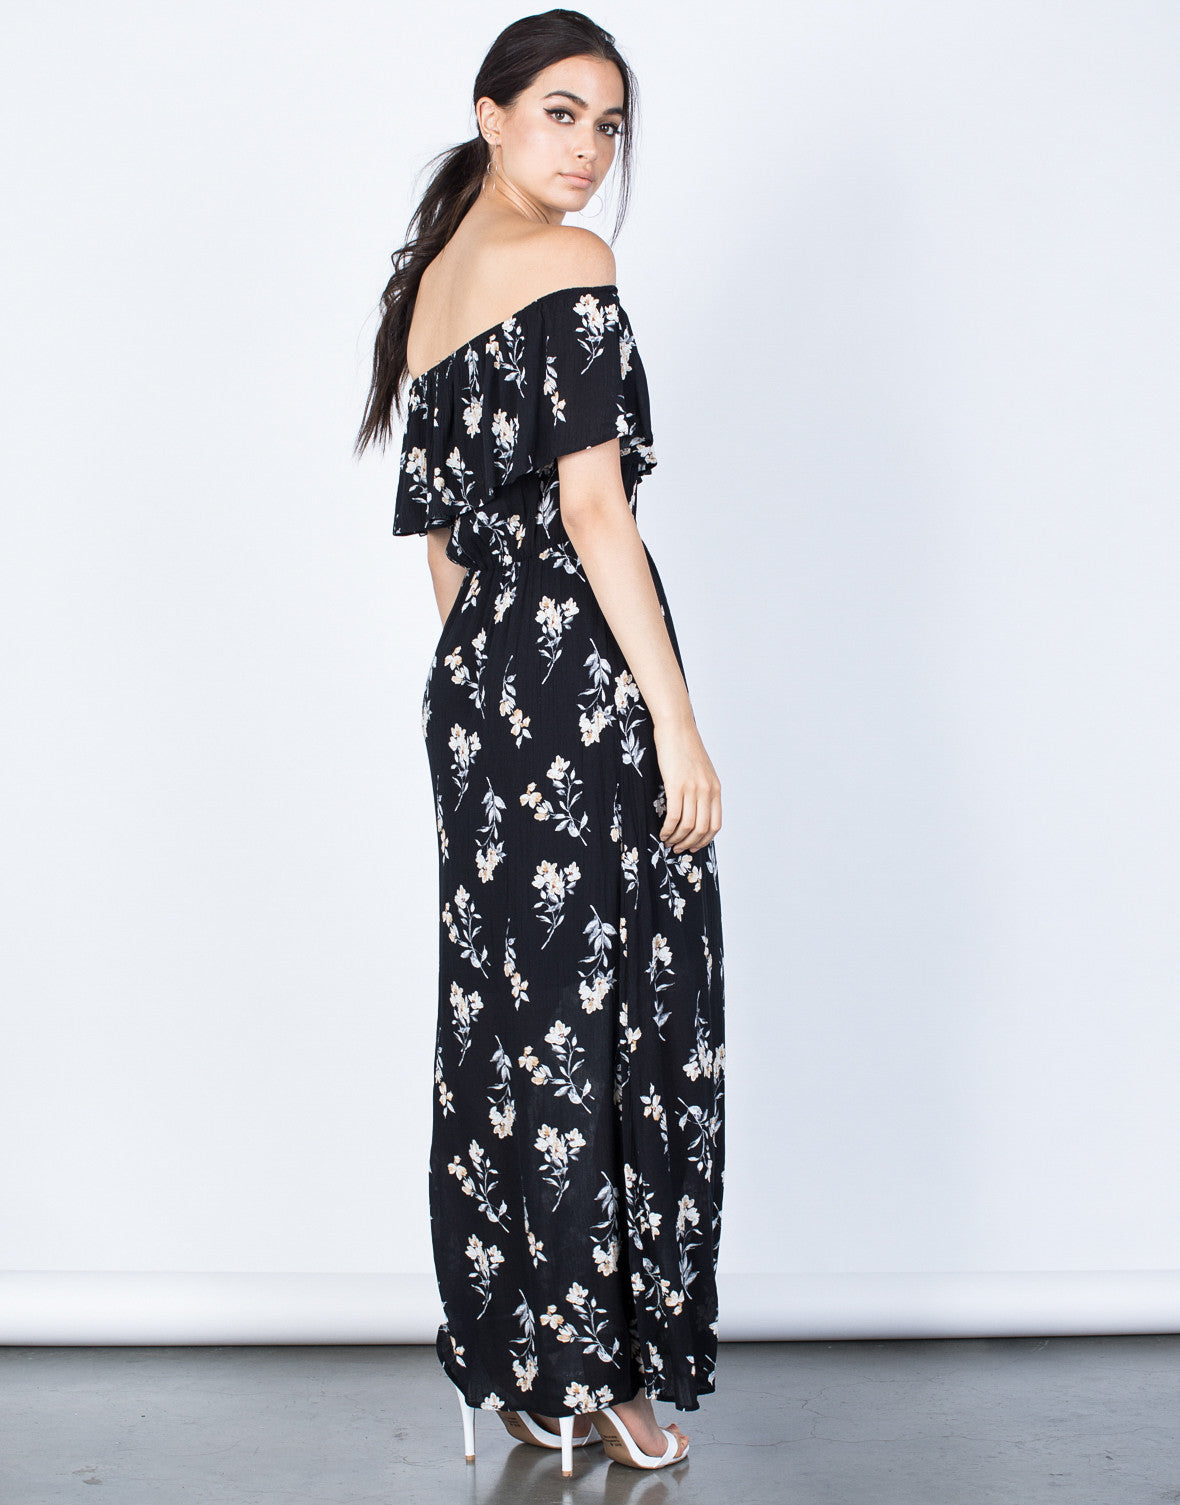 Back View of Evening Floral Maxi Dress